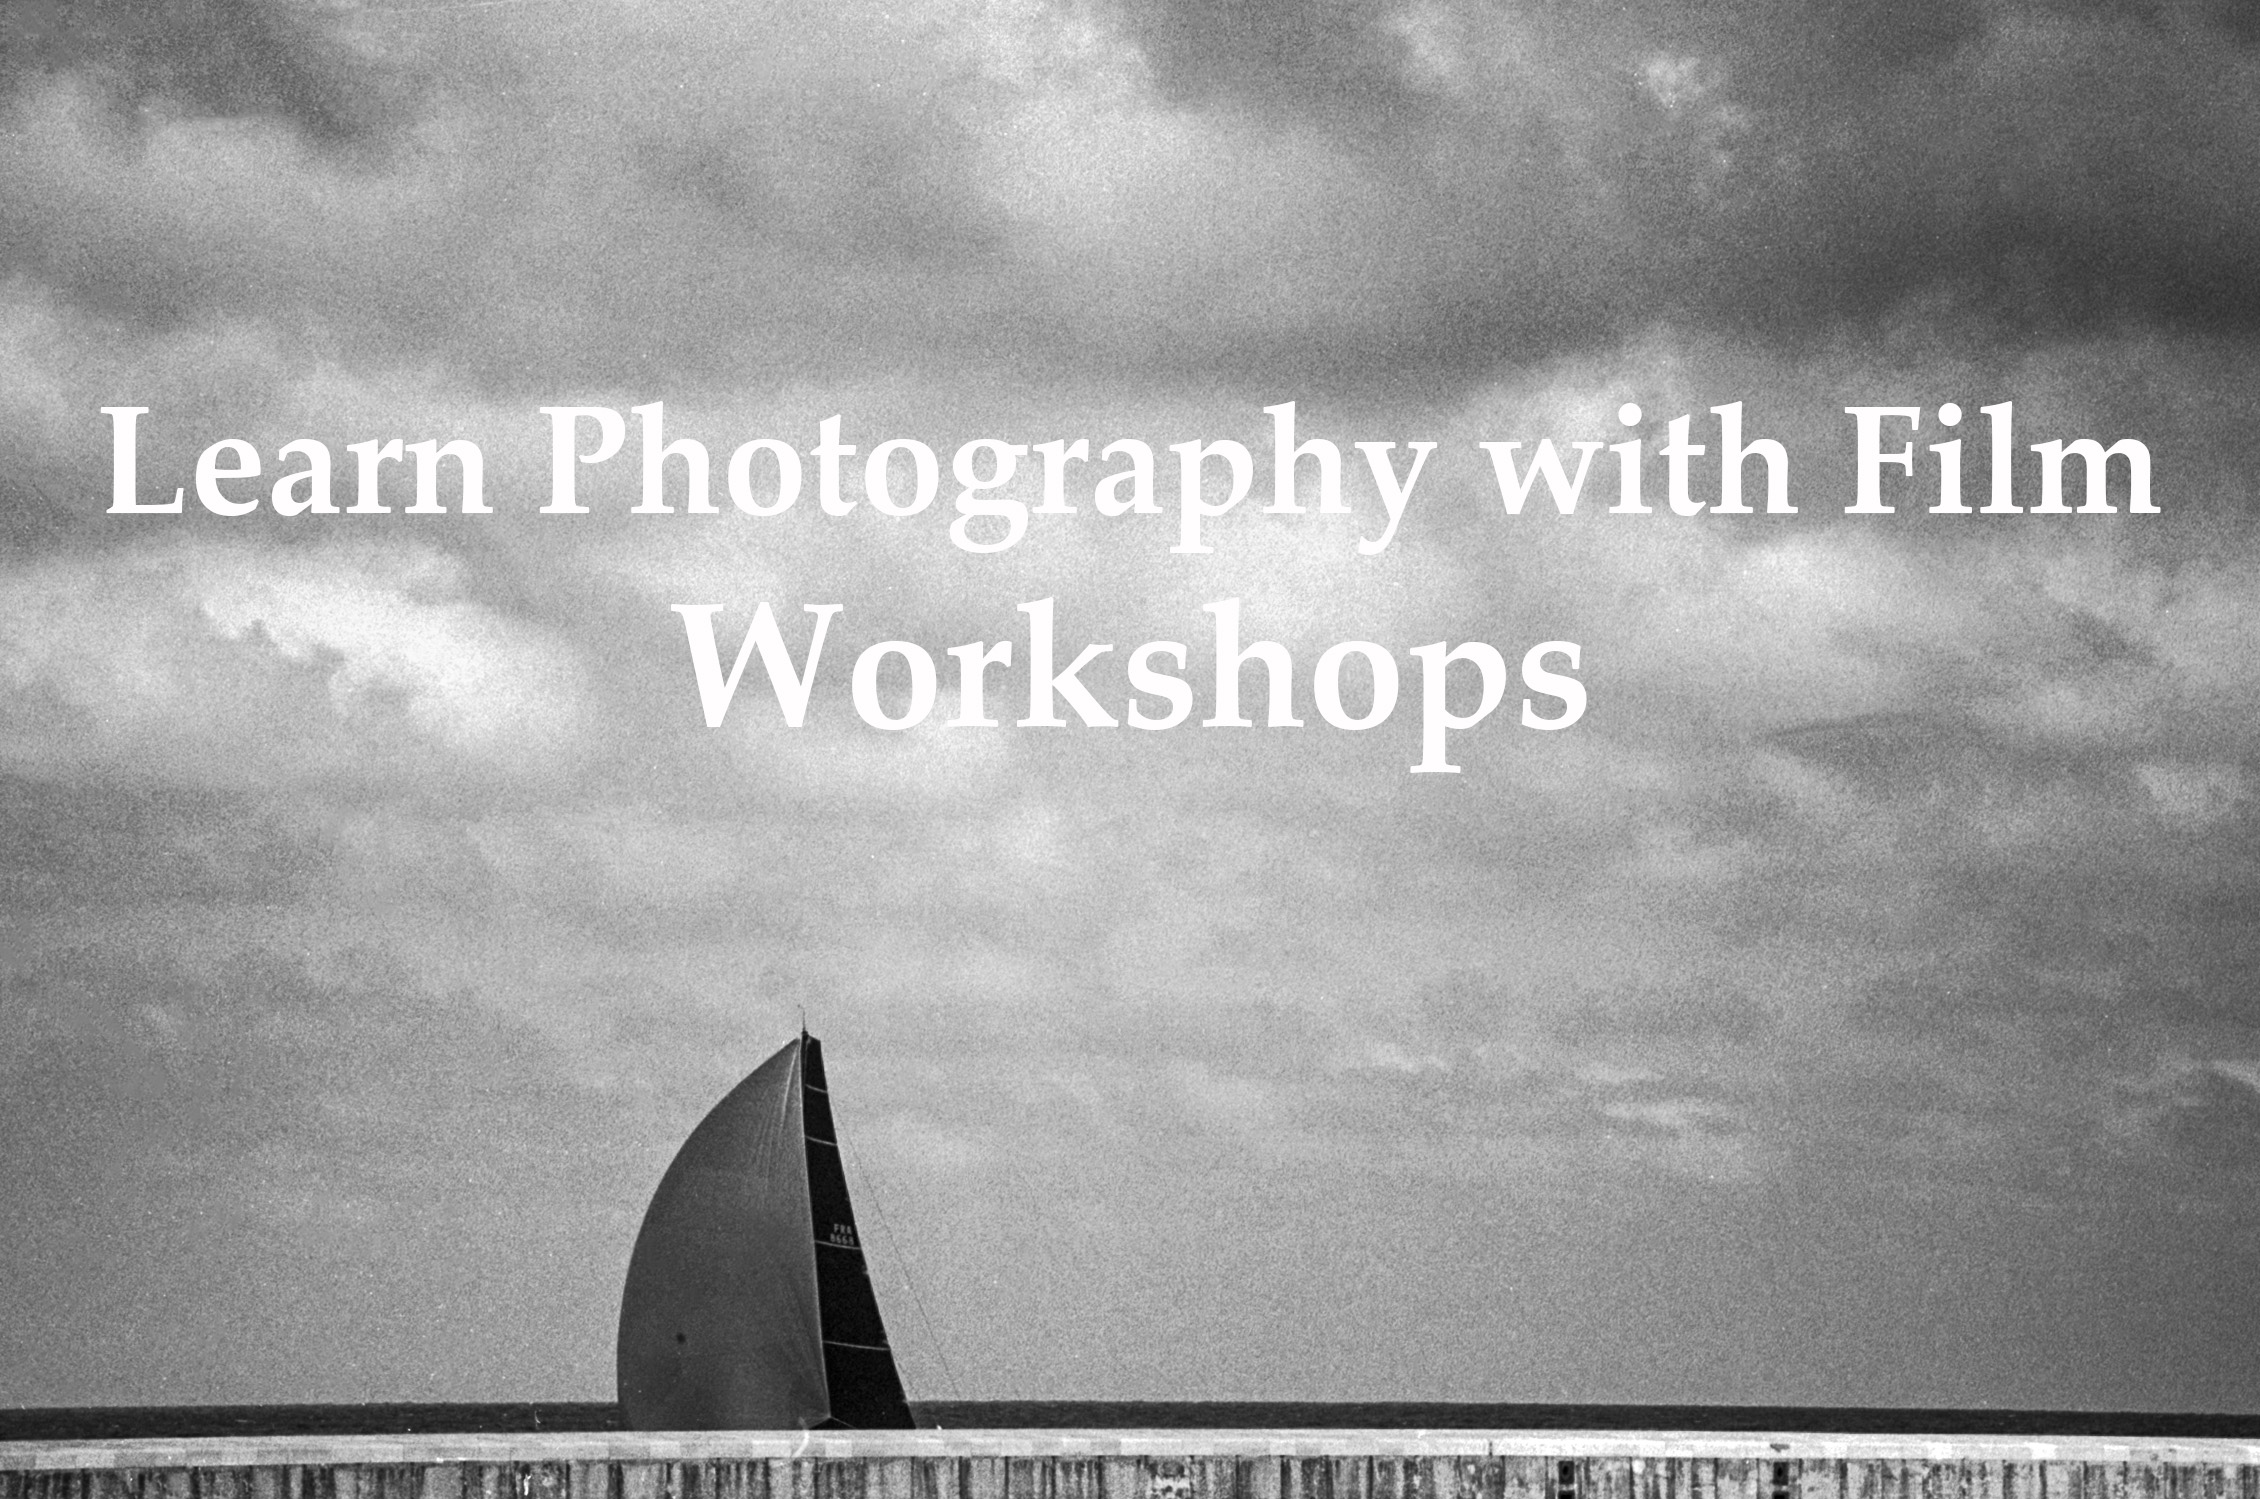 Learn Photography, Workshops, Film, 35mm